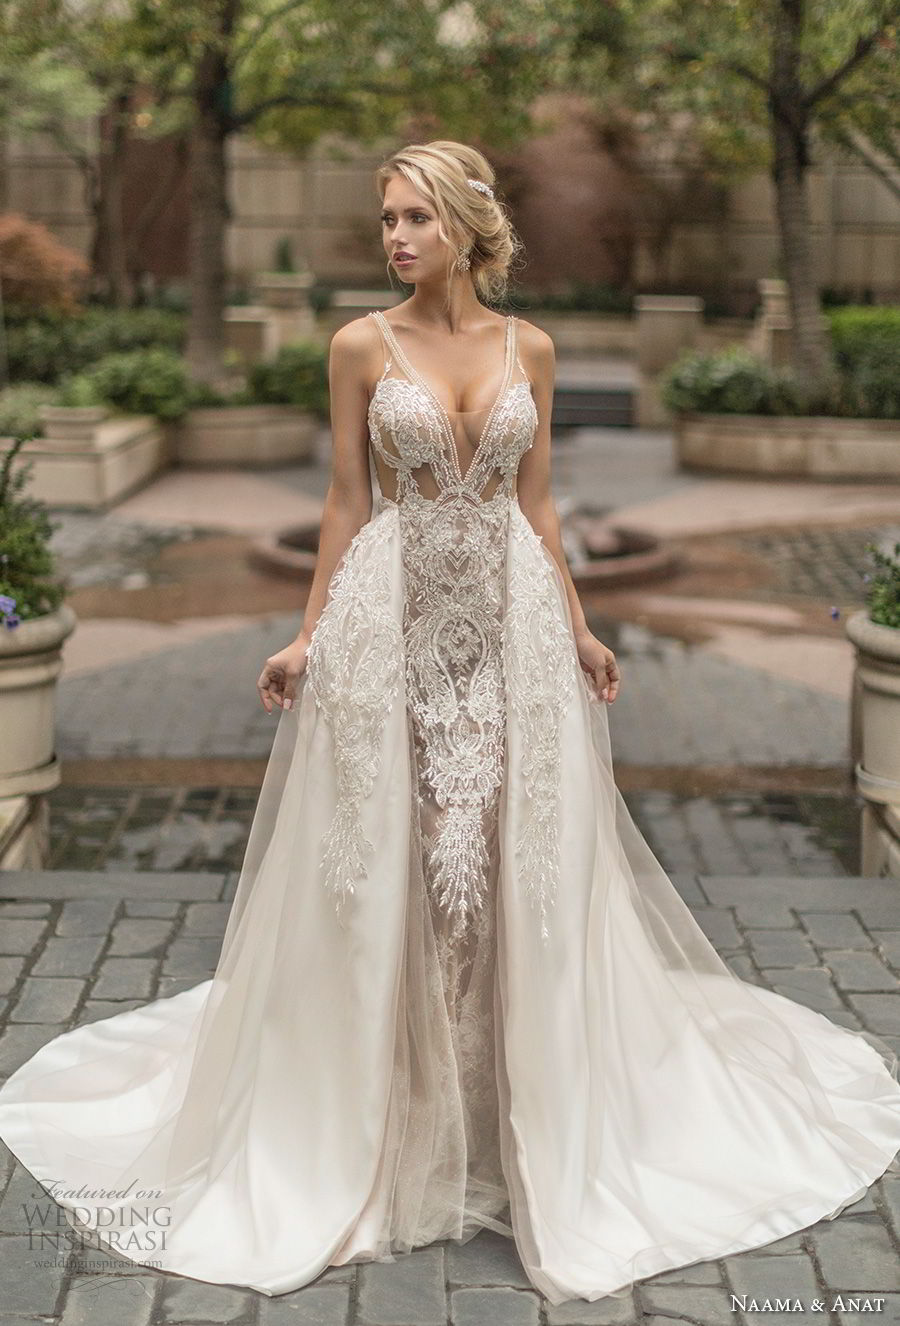 naama anat spring 2019 bridal sleeveless with strap deep v neck full embellishment sexy glamorous sheath wedding dress a line overskirt low open back chapel train (4) mv